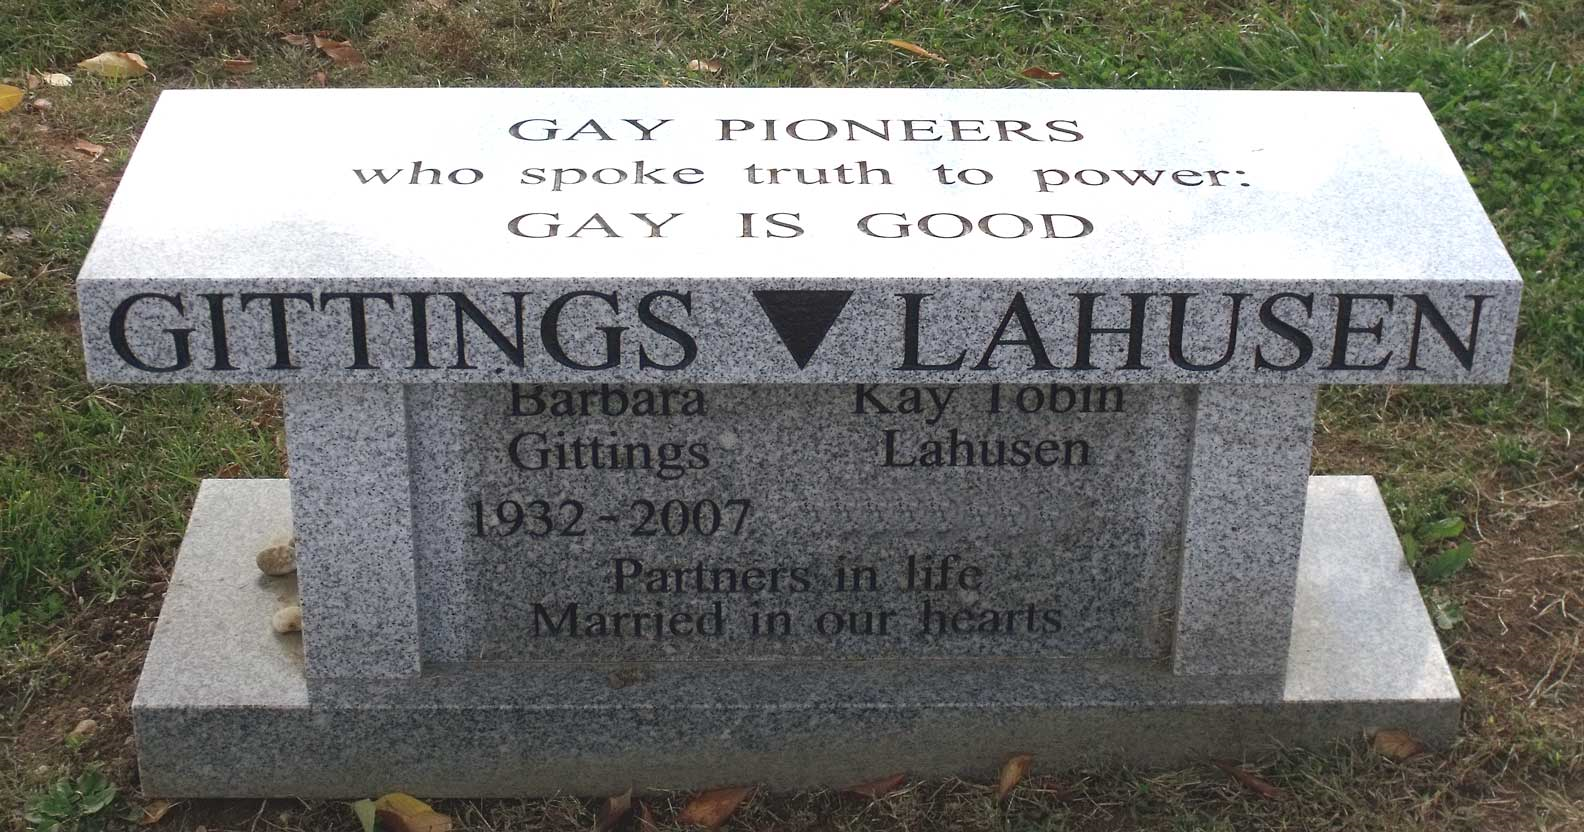 Barbara Gittings' grave marker, courtesy of John Shuck on Find A Grave (reproduced under Fair Use)